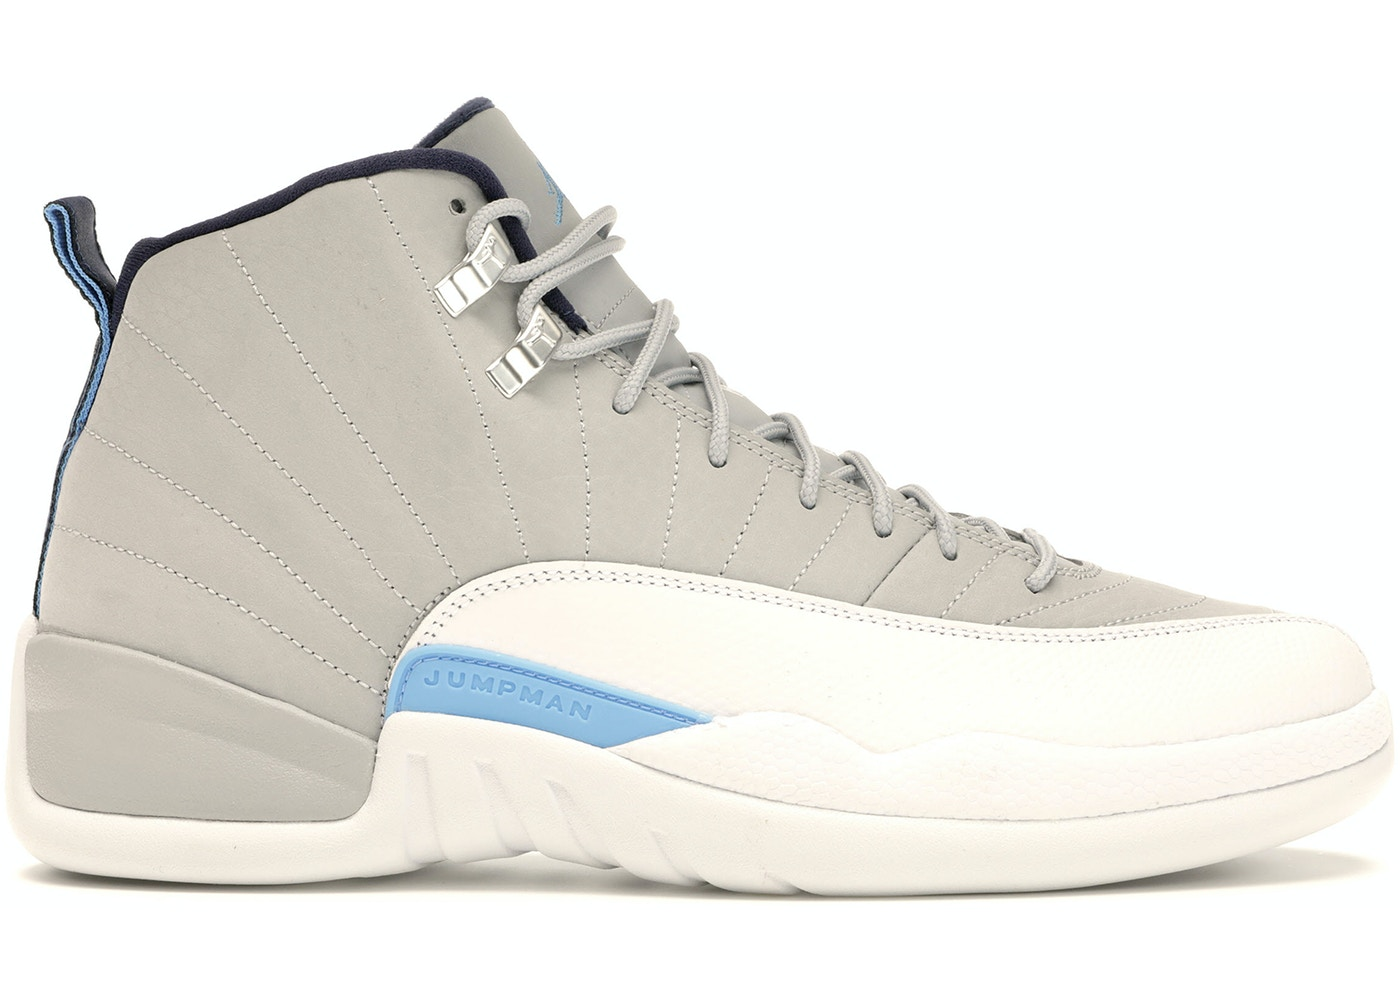 online store ea9e4 aab97 Jordan 12 Retro Grey University Blue